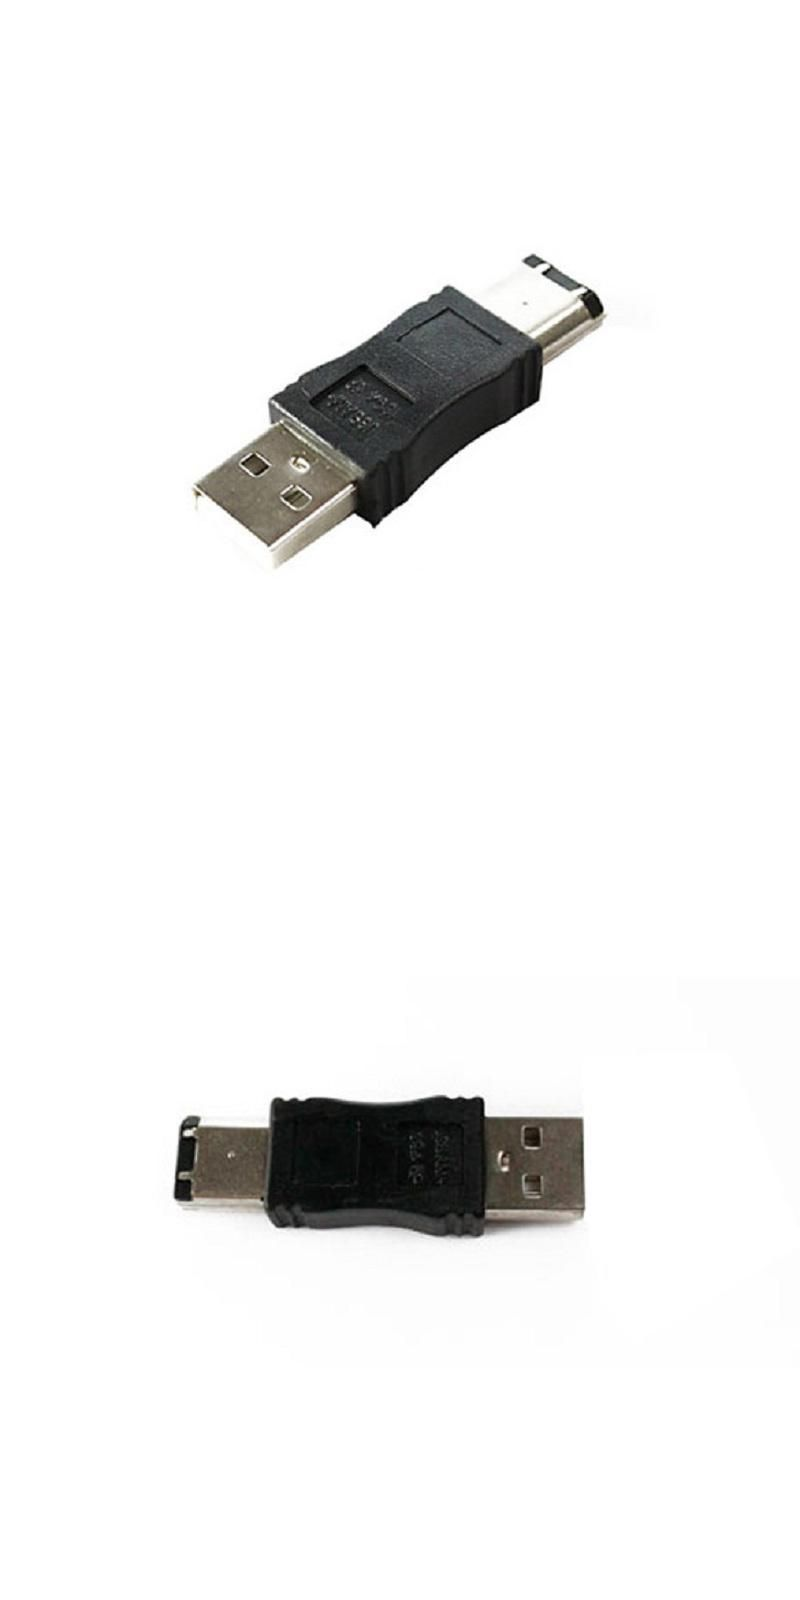 medium resolution of  visit to buy un2f firewire ieee 1394 6p to usb a male adaptor convertor